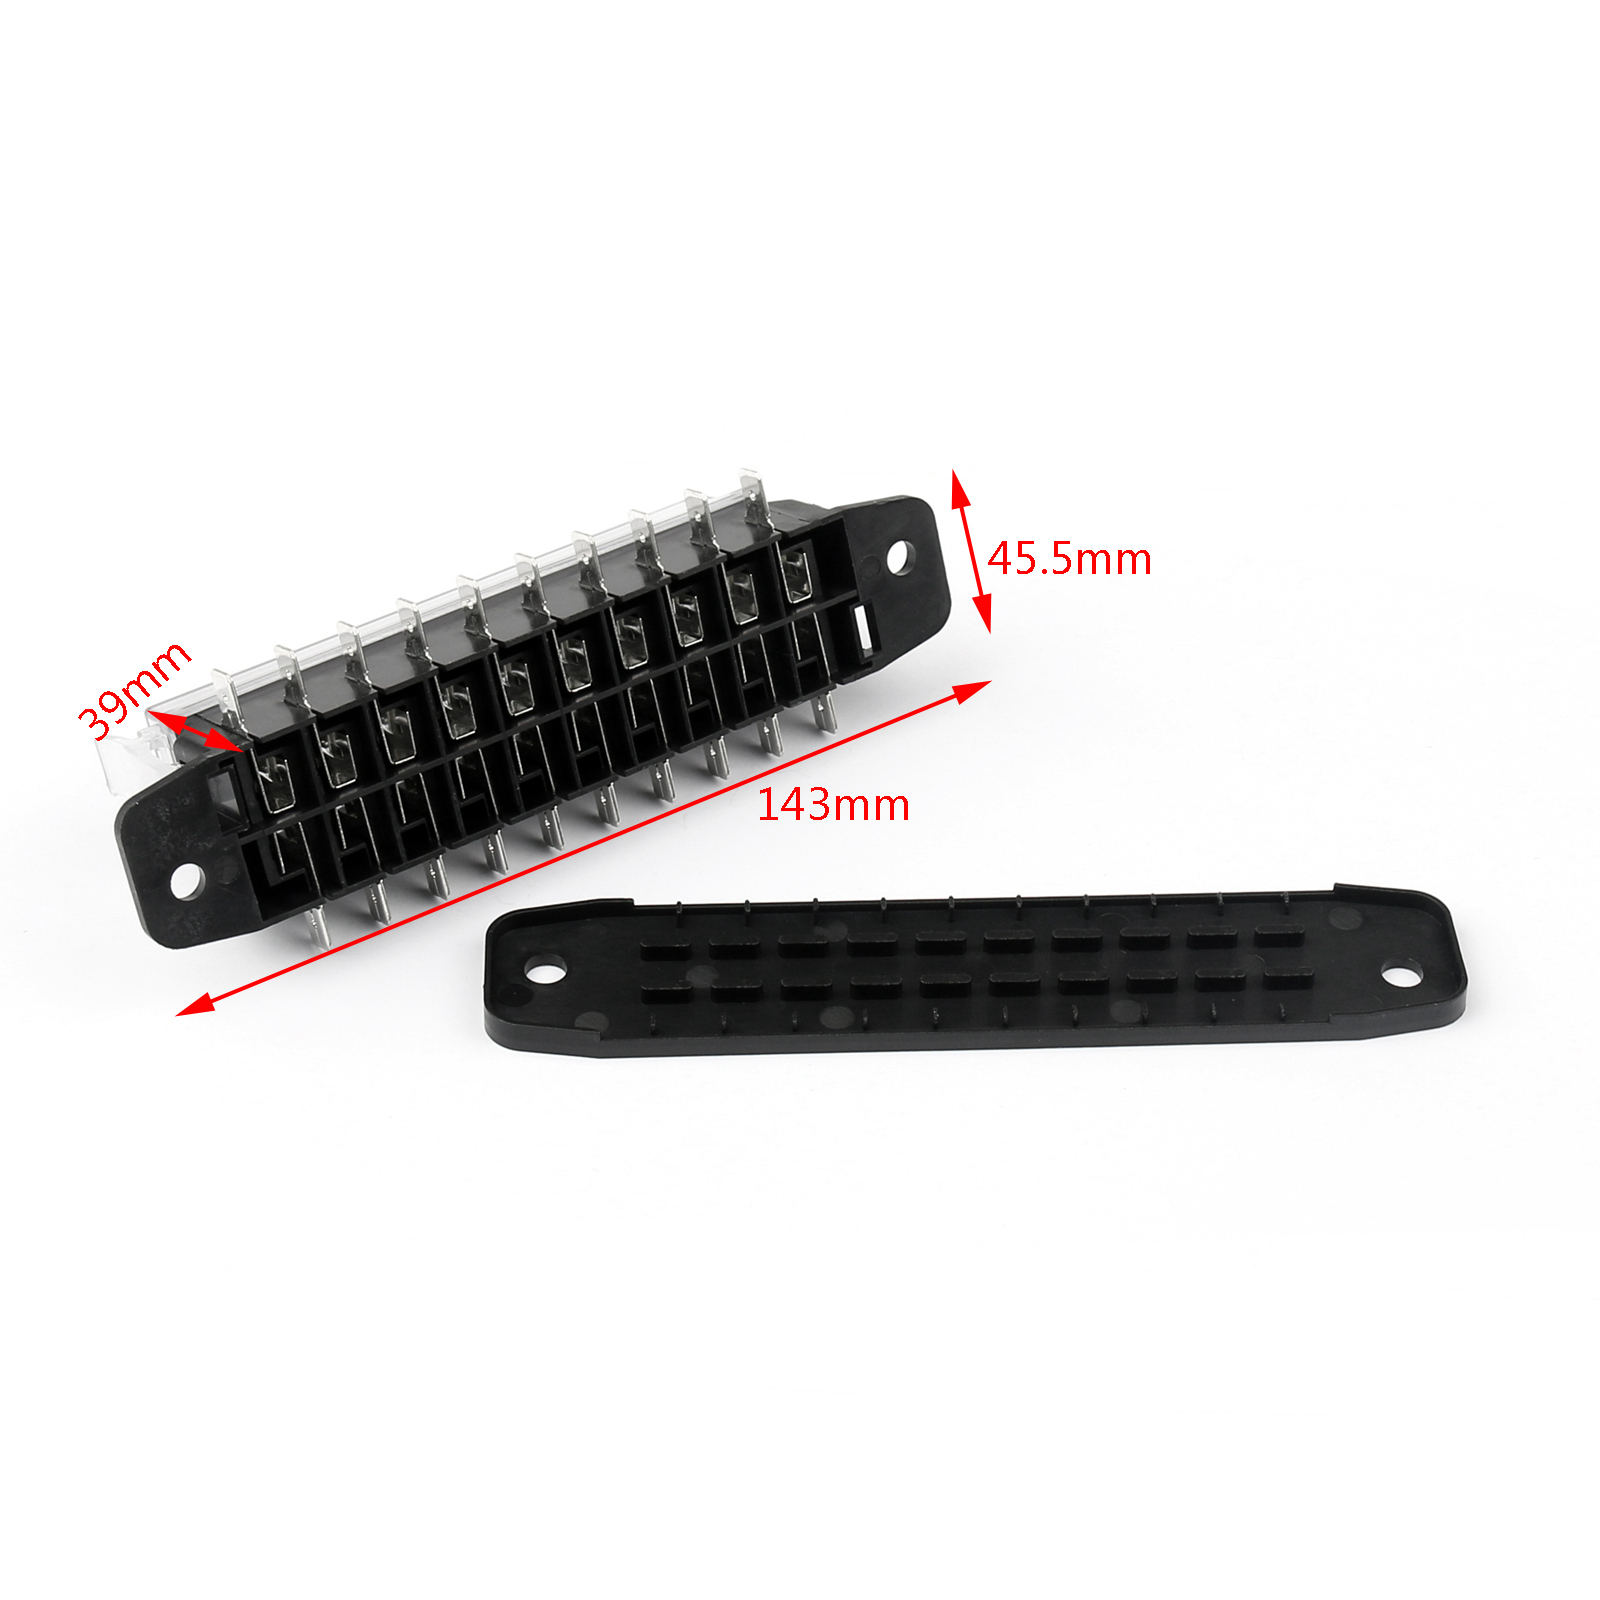 1pcs Car Blade Fuse Box 10 Way Automotive Circuit Protect Types Of Boxes 100 Brand New And High Quality Shape Colour Same As The Picture Show 1 Type 2 For Protection 3 Material Plastic Metal